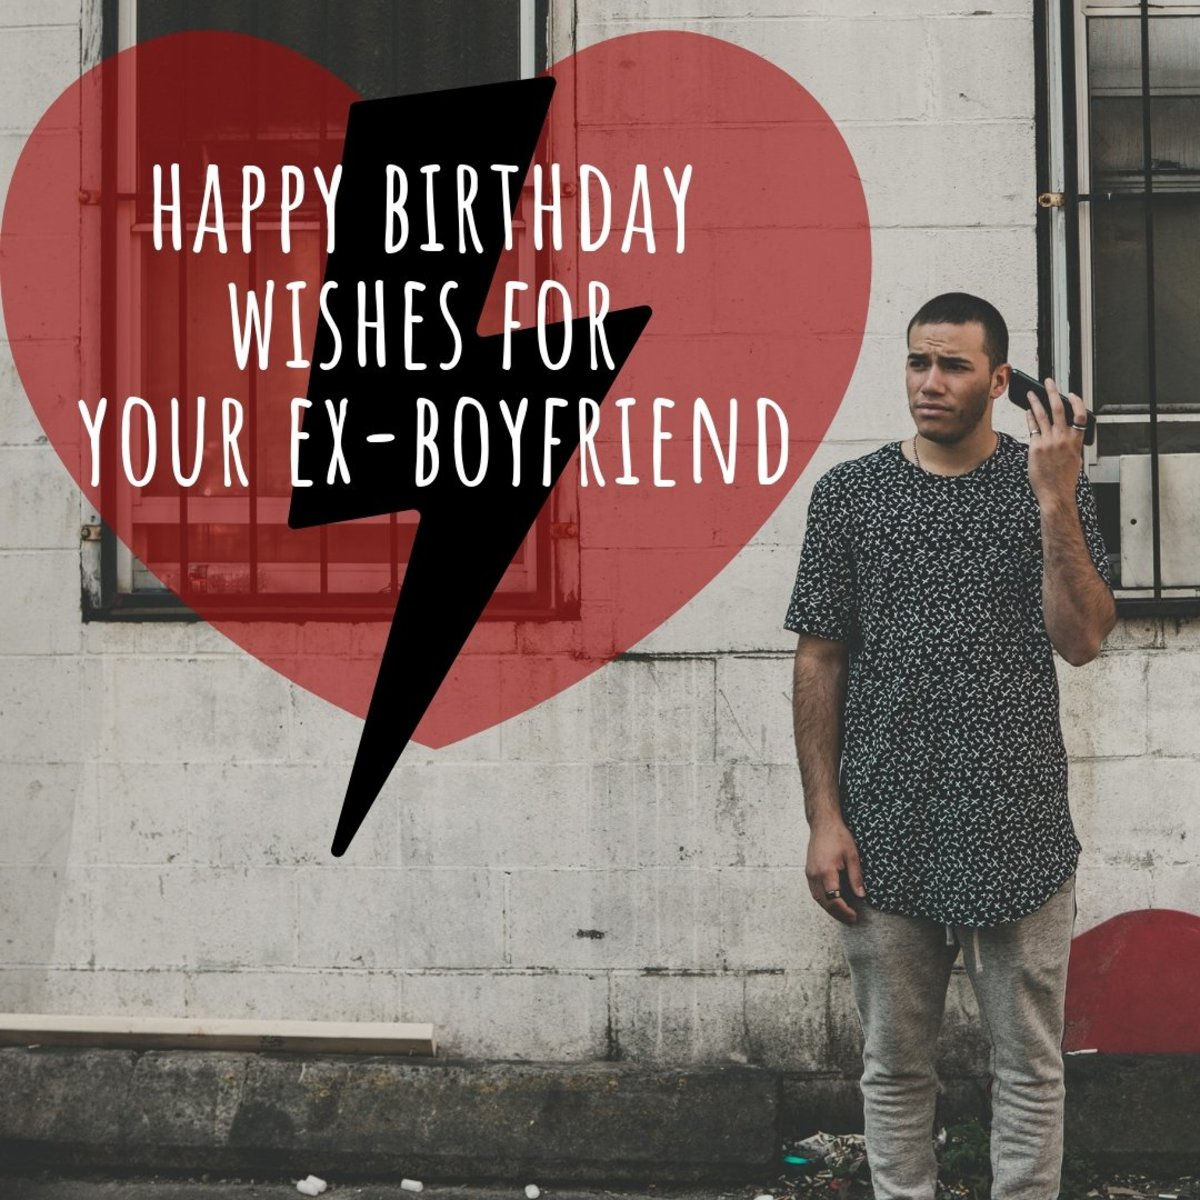 Happy Birthday Wishes for Your Ex-Boyfriend: Ideas for Short